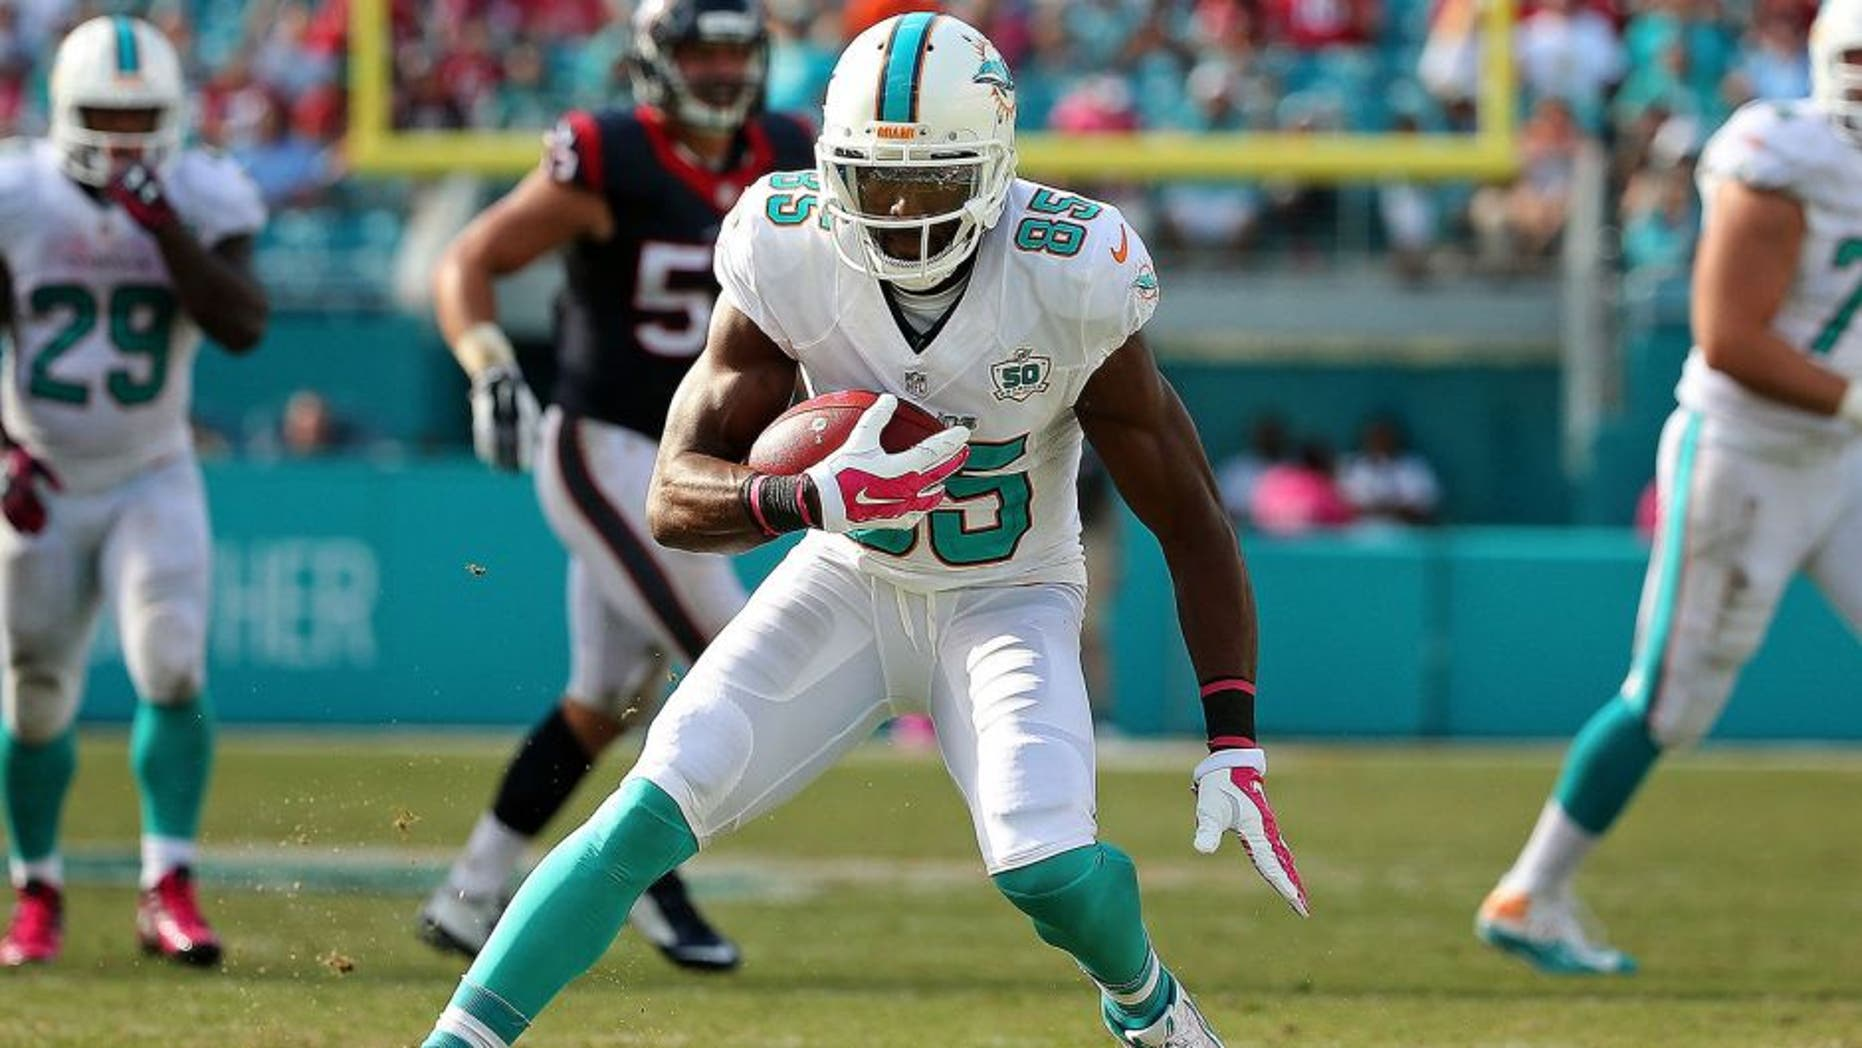 MIAMI GARDENS, FL - OCTOBER 25: Greg Jennings #85 of the Miami Dolphins runs after a catch during a game against the Houston Texans at Sun Life Stadium on October 25, 2015 in Miami Gardens, Florida. (Photo by Mike Ehrmann/Getty Images)